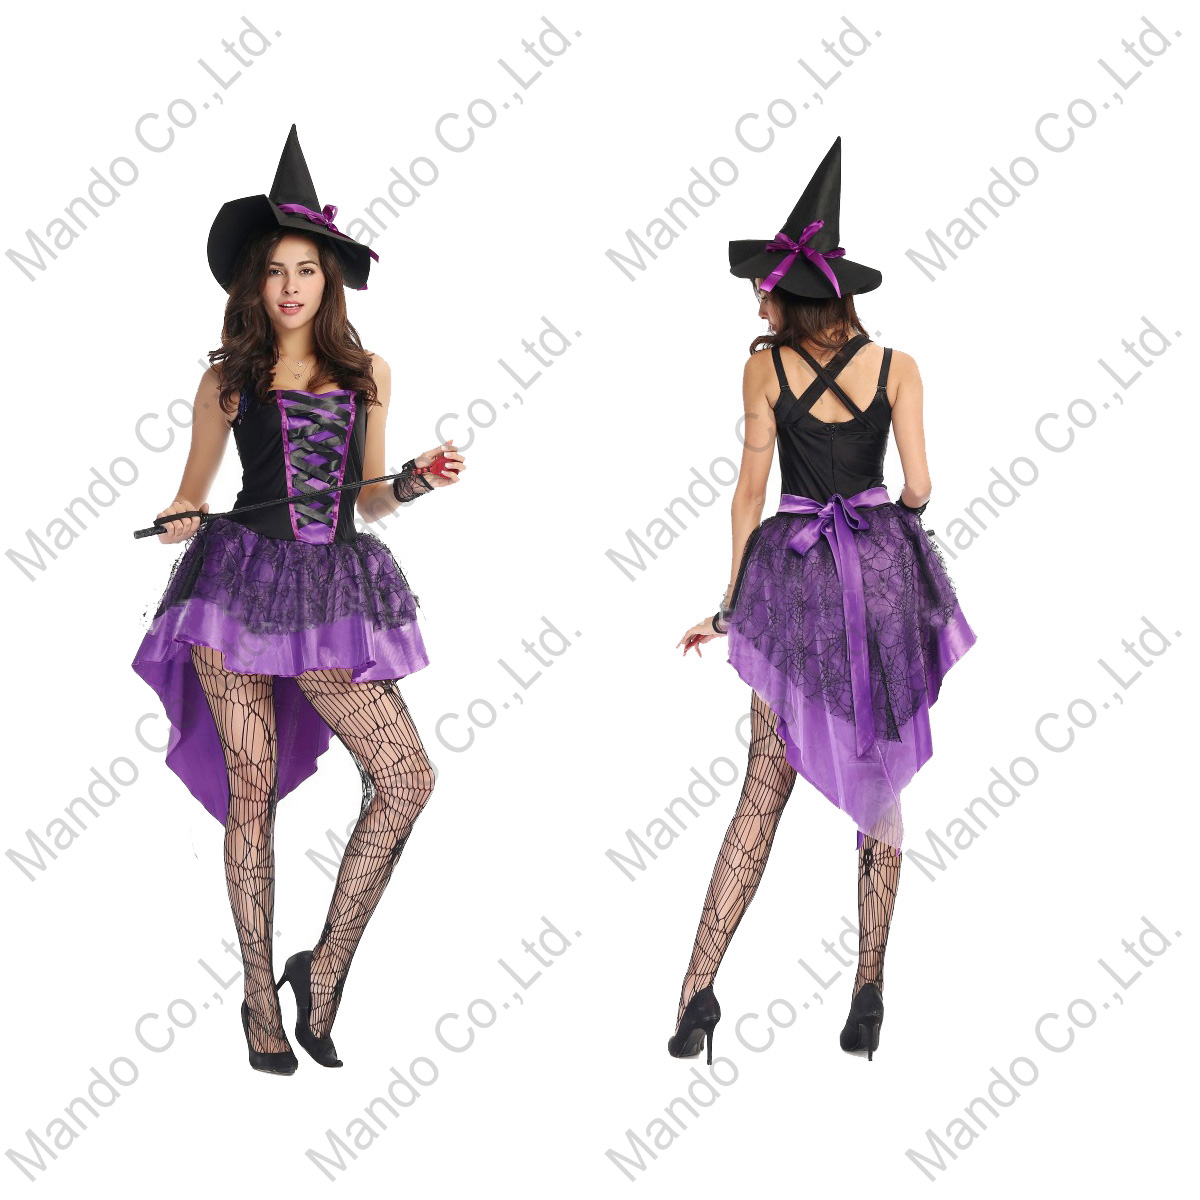 Compare Prices on Halloween Costume Purple Dress- Online Shopping ...